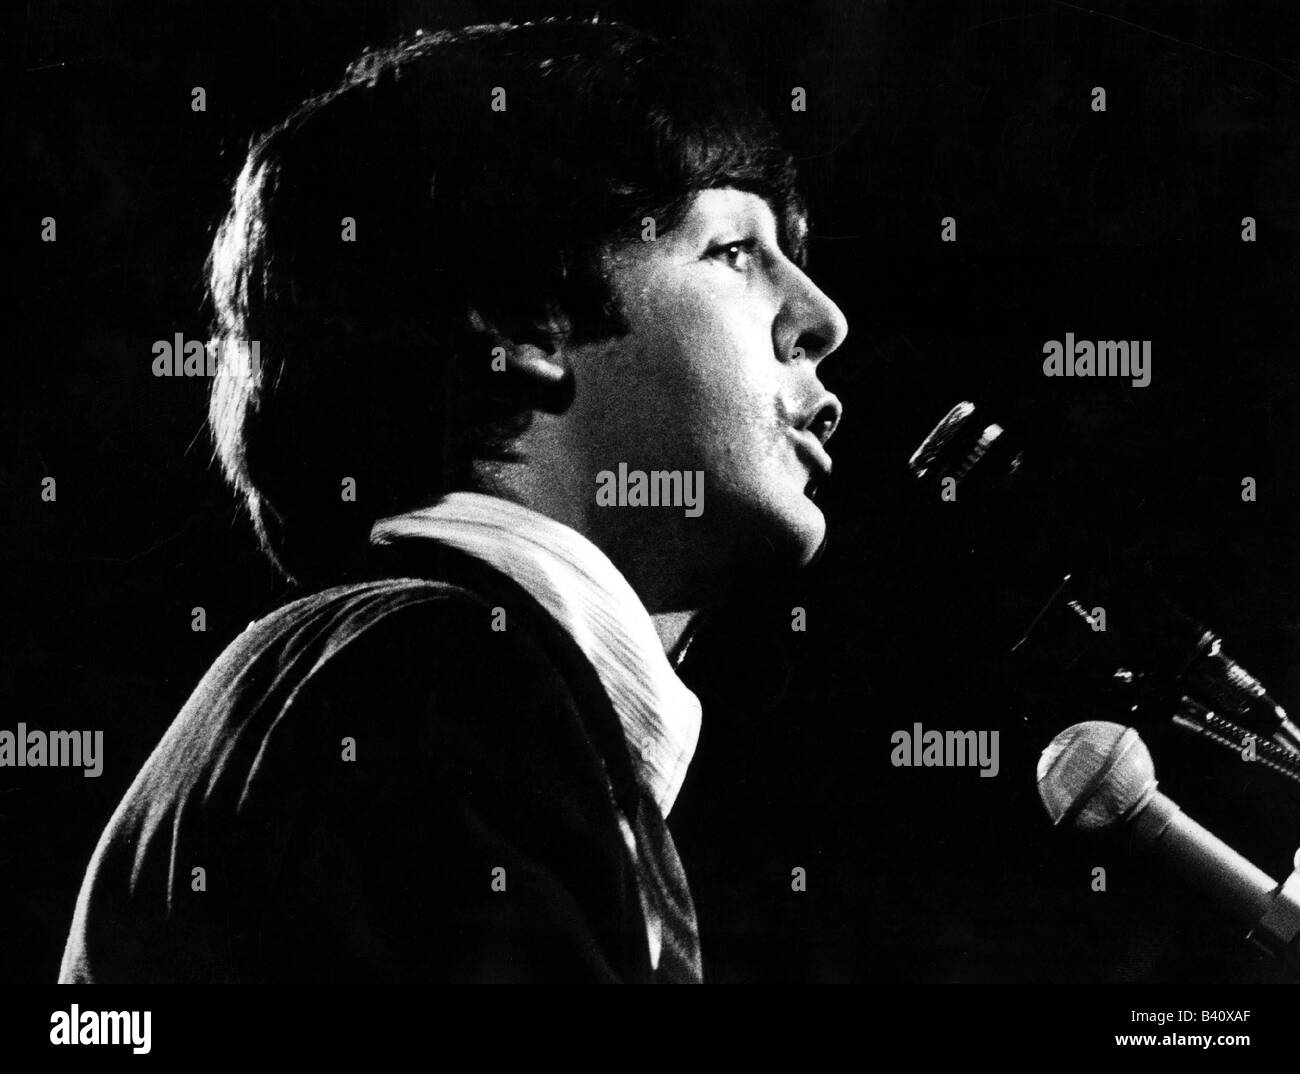 McCartney, Paul, * 18.6.1942, British singer and musician, (The Beatles), portrait, singing, in concert, 1966, 1960s, - Stock Image